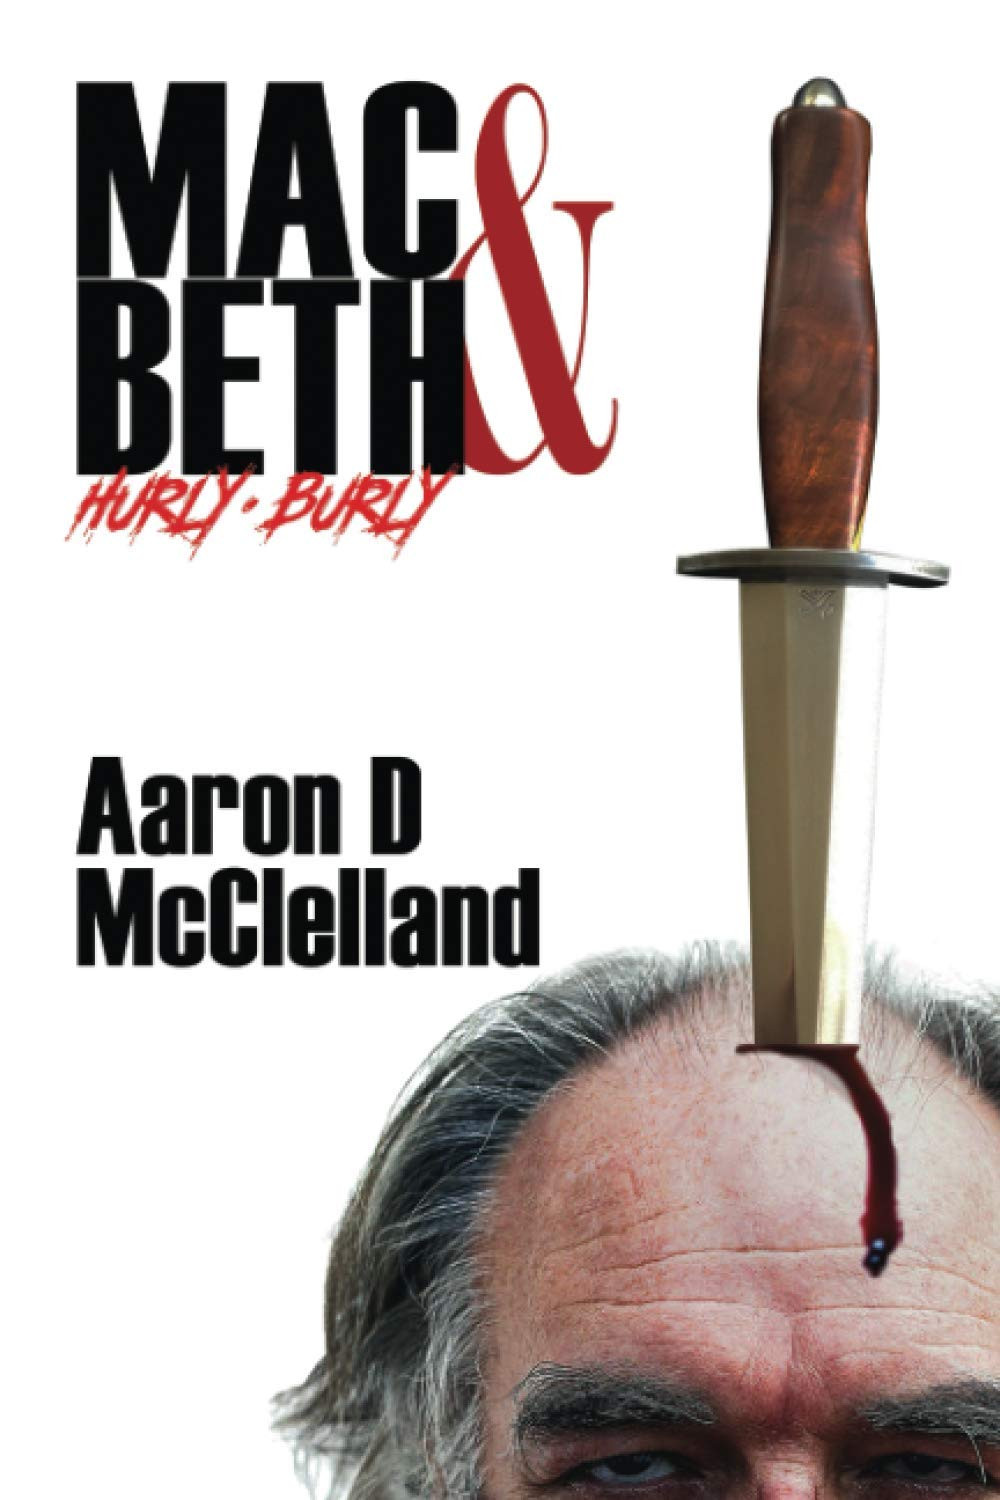 Book Review of Mac & Beth Hurly Burly by Aaron D. McClelland